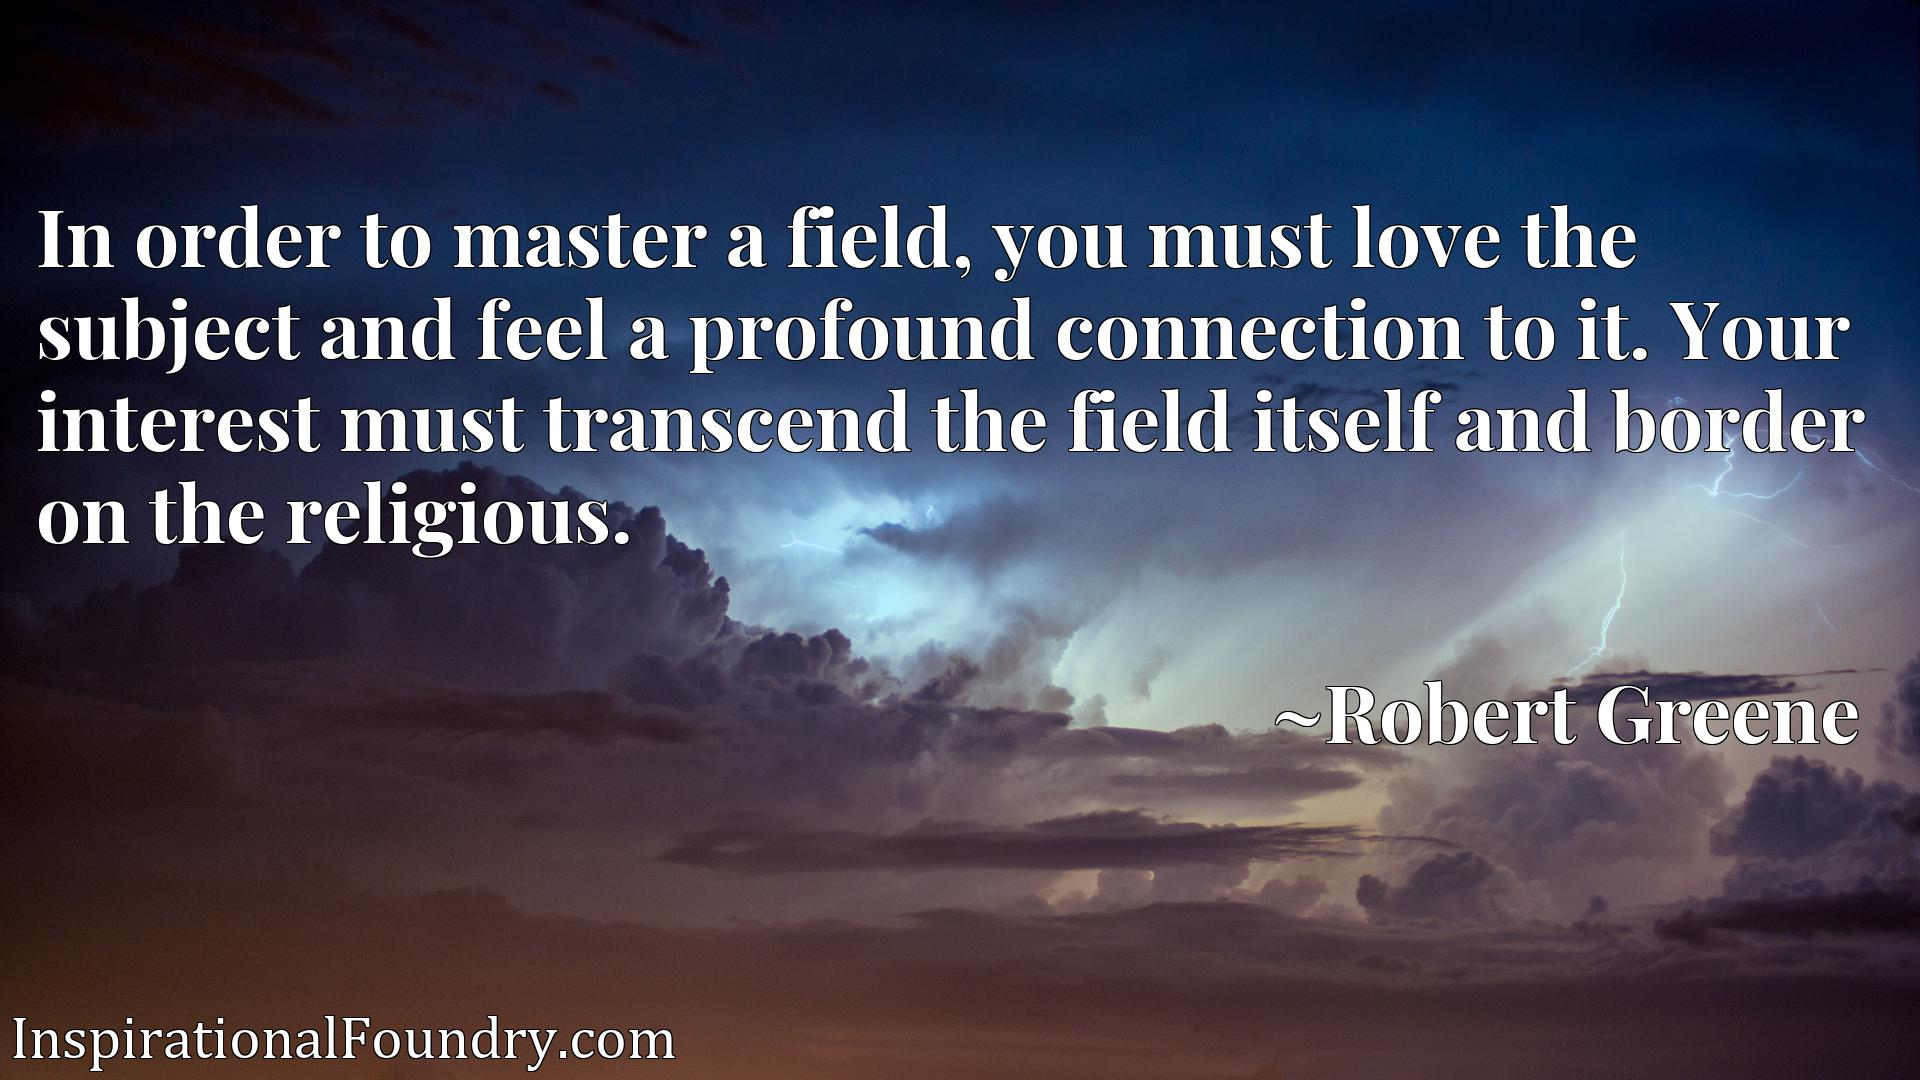 Quote Picture :In order to master a field, you must love the subject and feel a profound connection to it. Your interest must transcend the field itself and border on the religious.